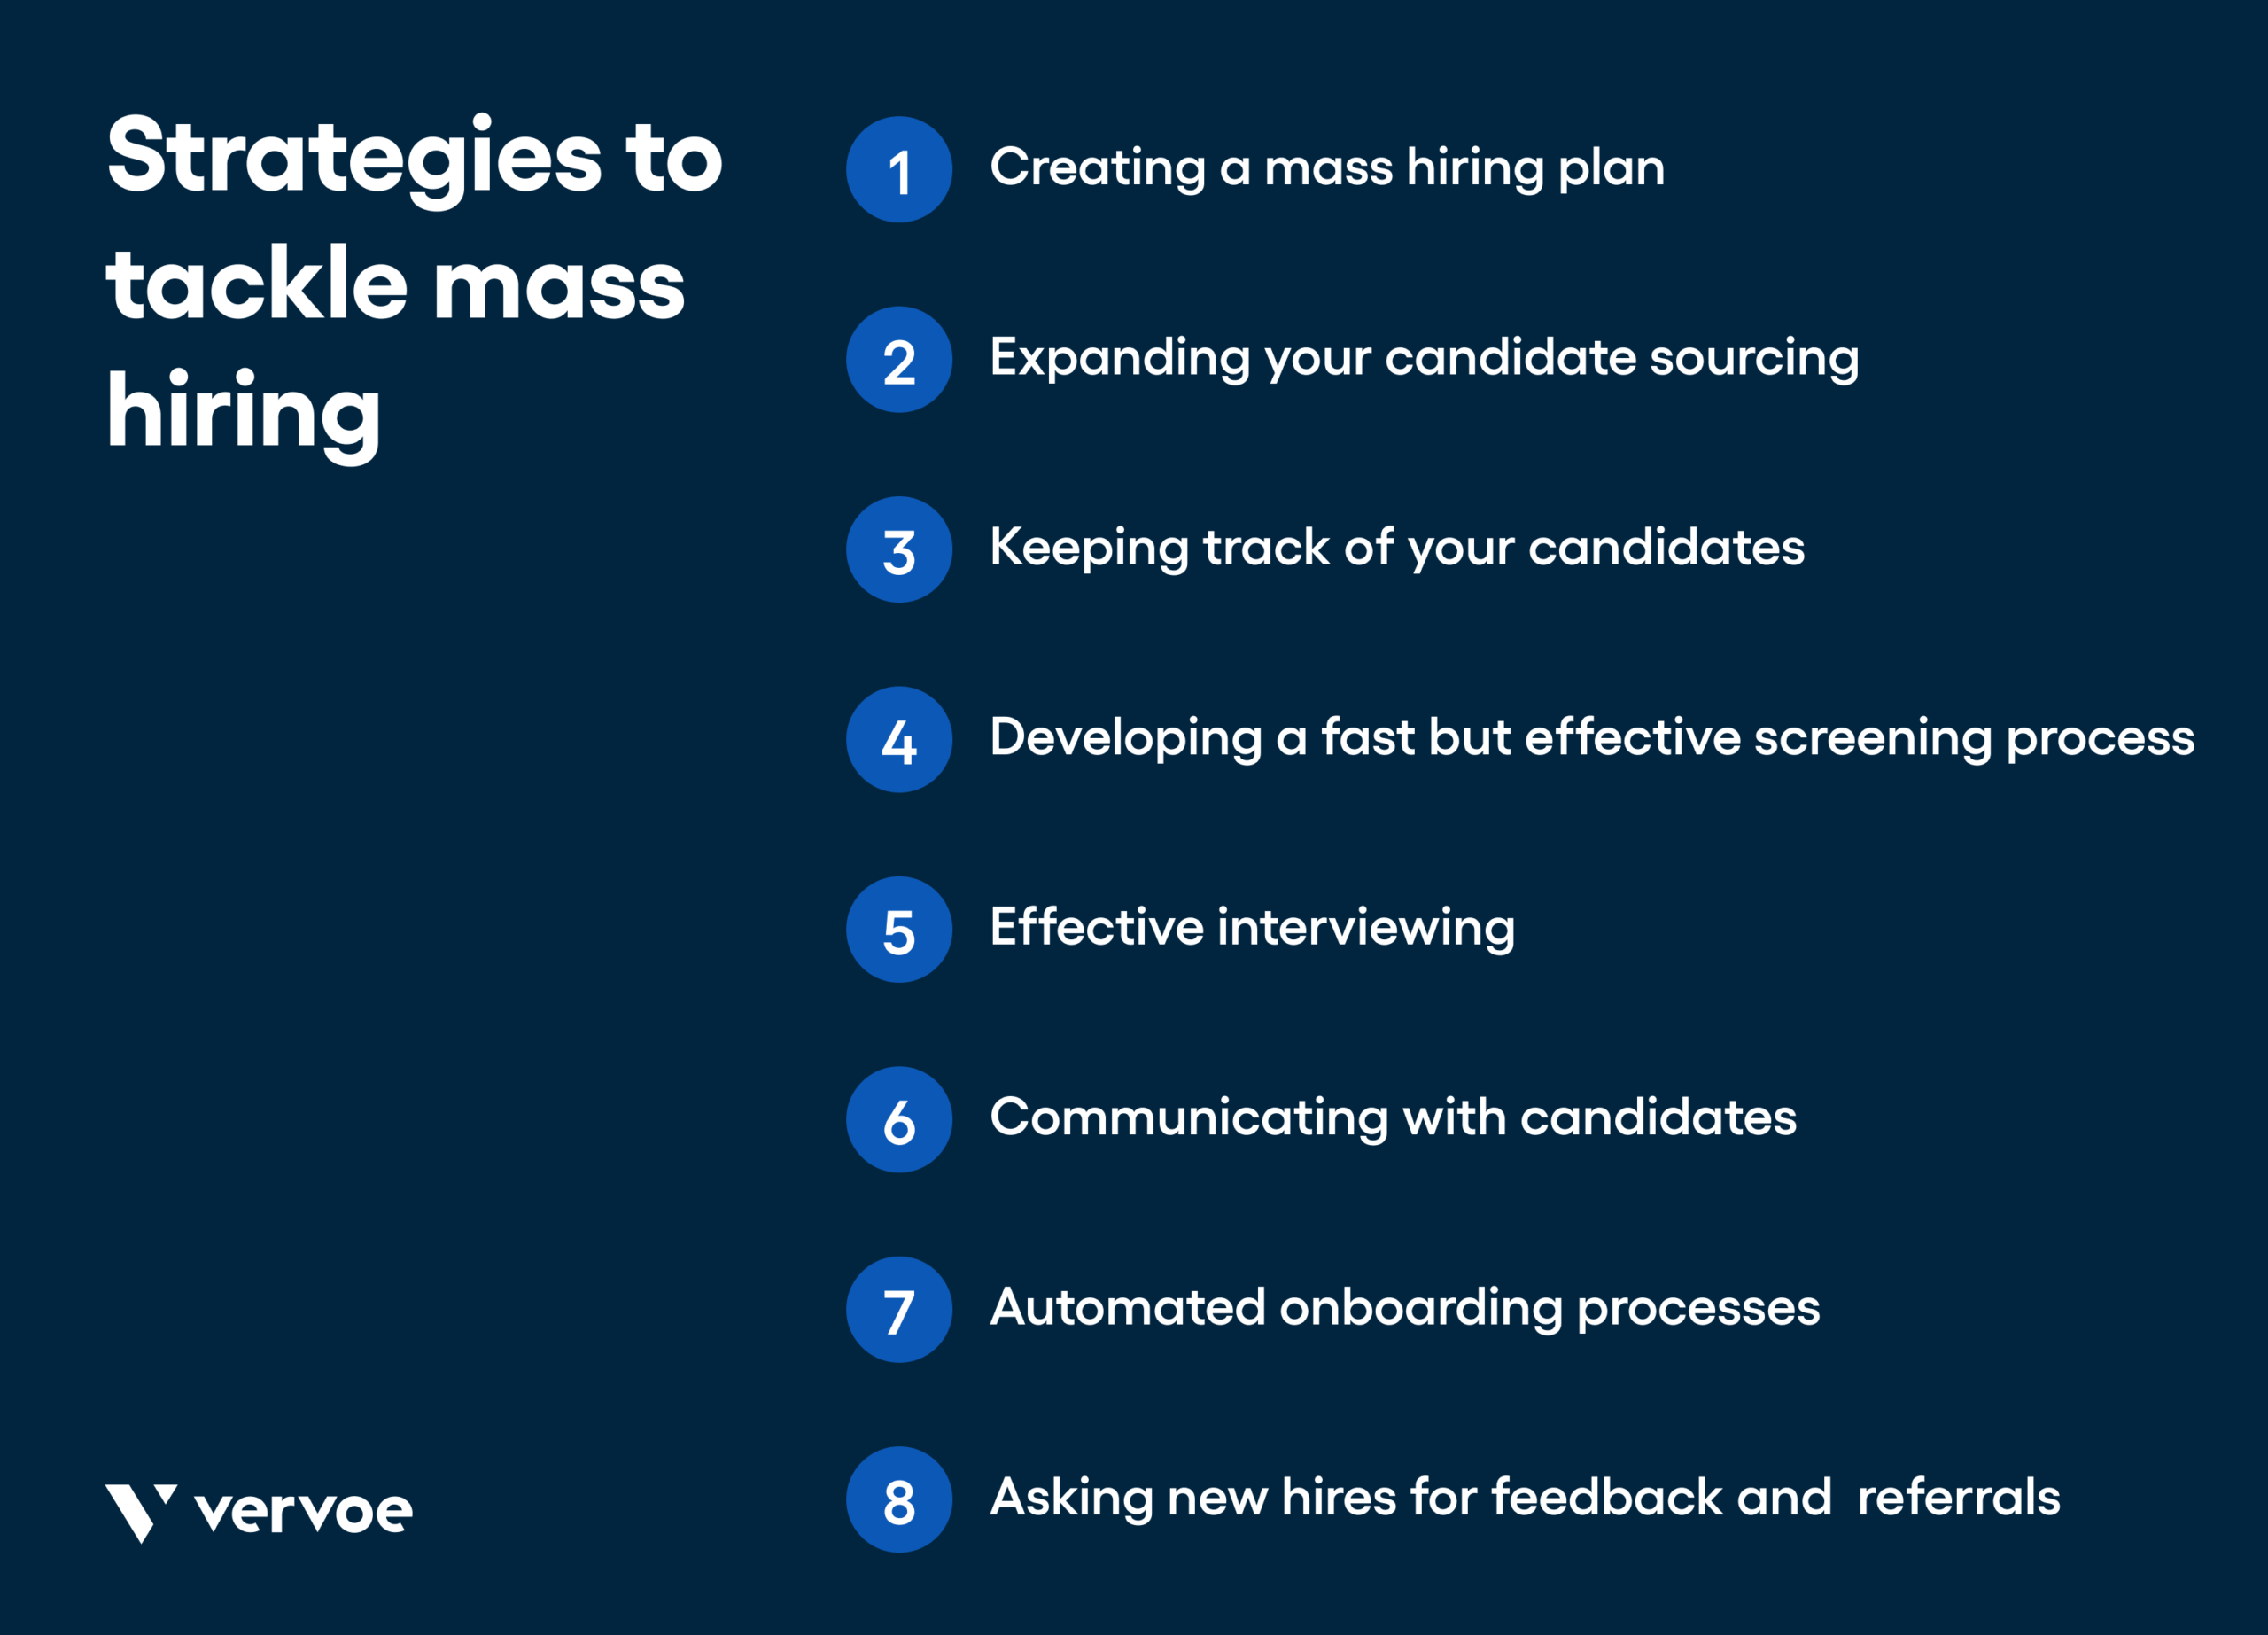 Infographic showing strategies of mass hiring